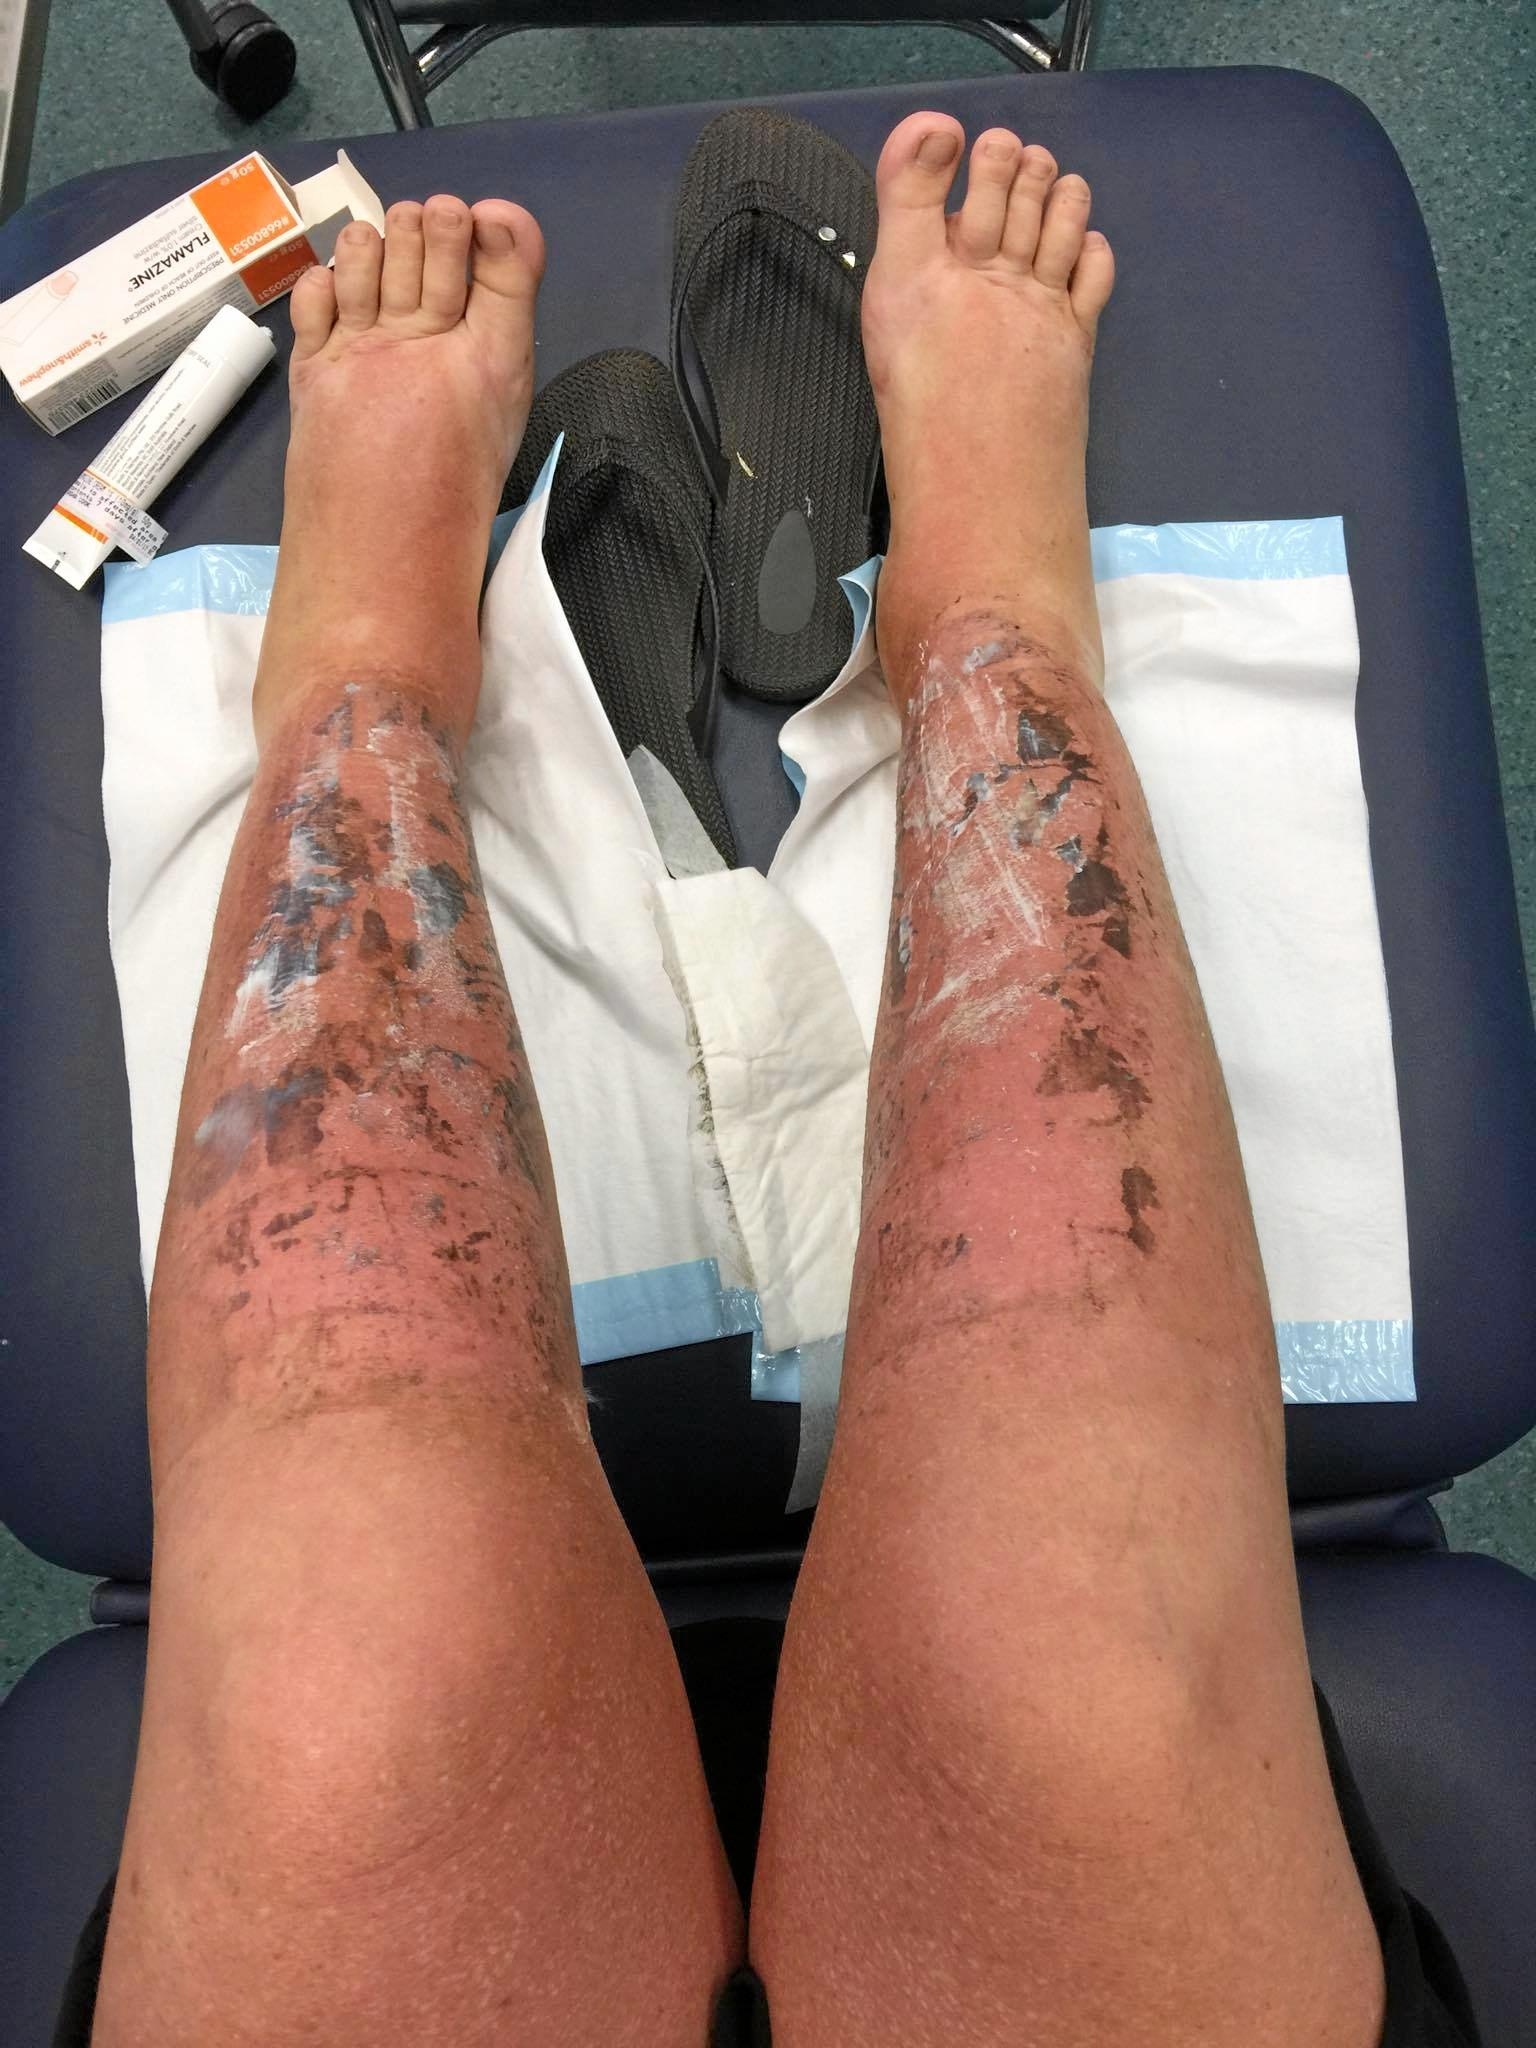 SUN CAUSES THIRD DEGREE BURN: On the way to healing - Sasha Cook's legs three days after beginning treatment.